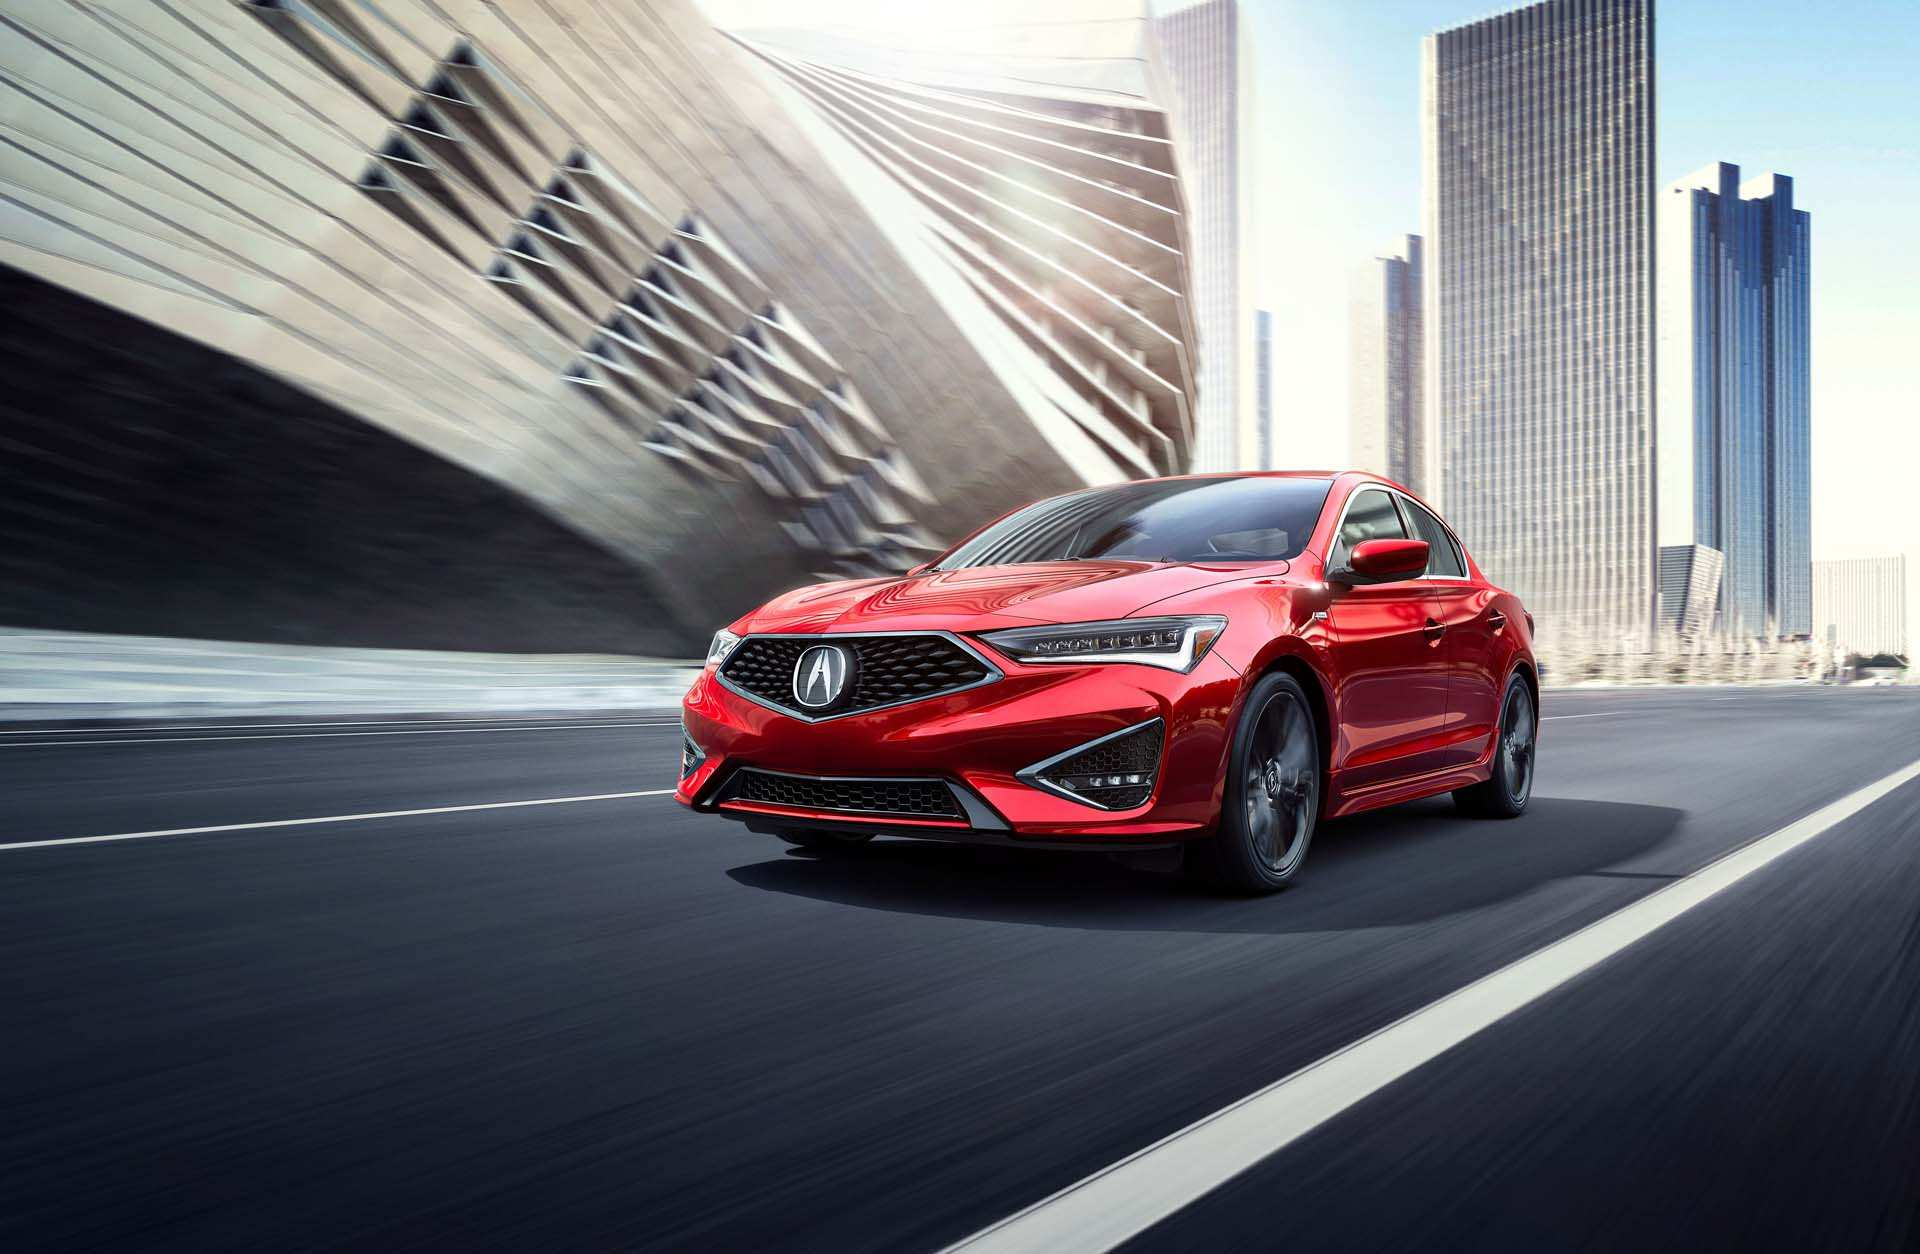 94 The 2020 Acura ILX Prices with 2020 Acura ILX